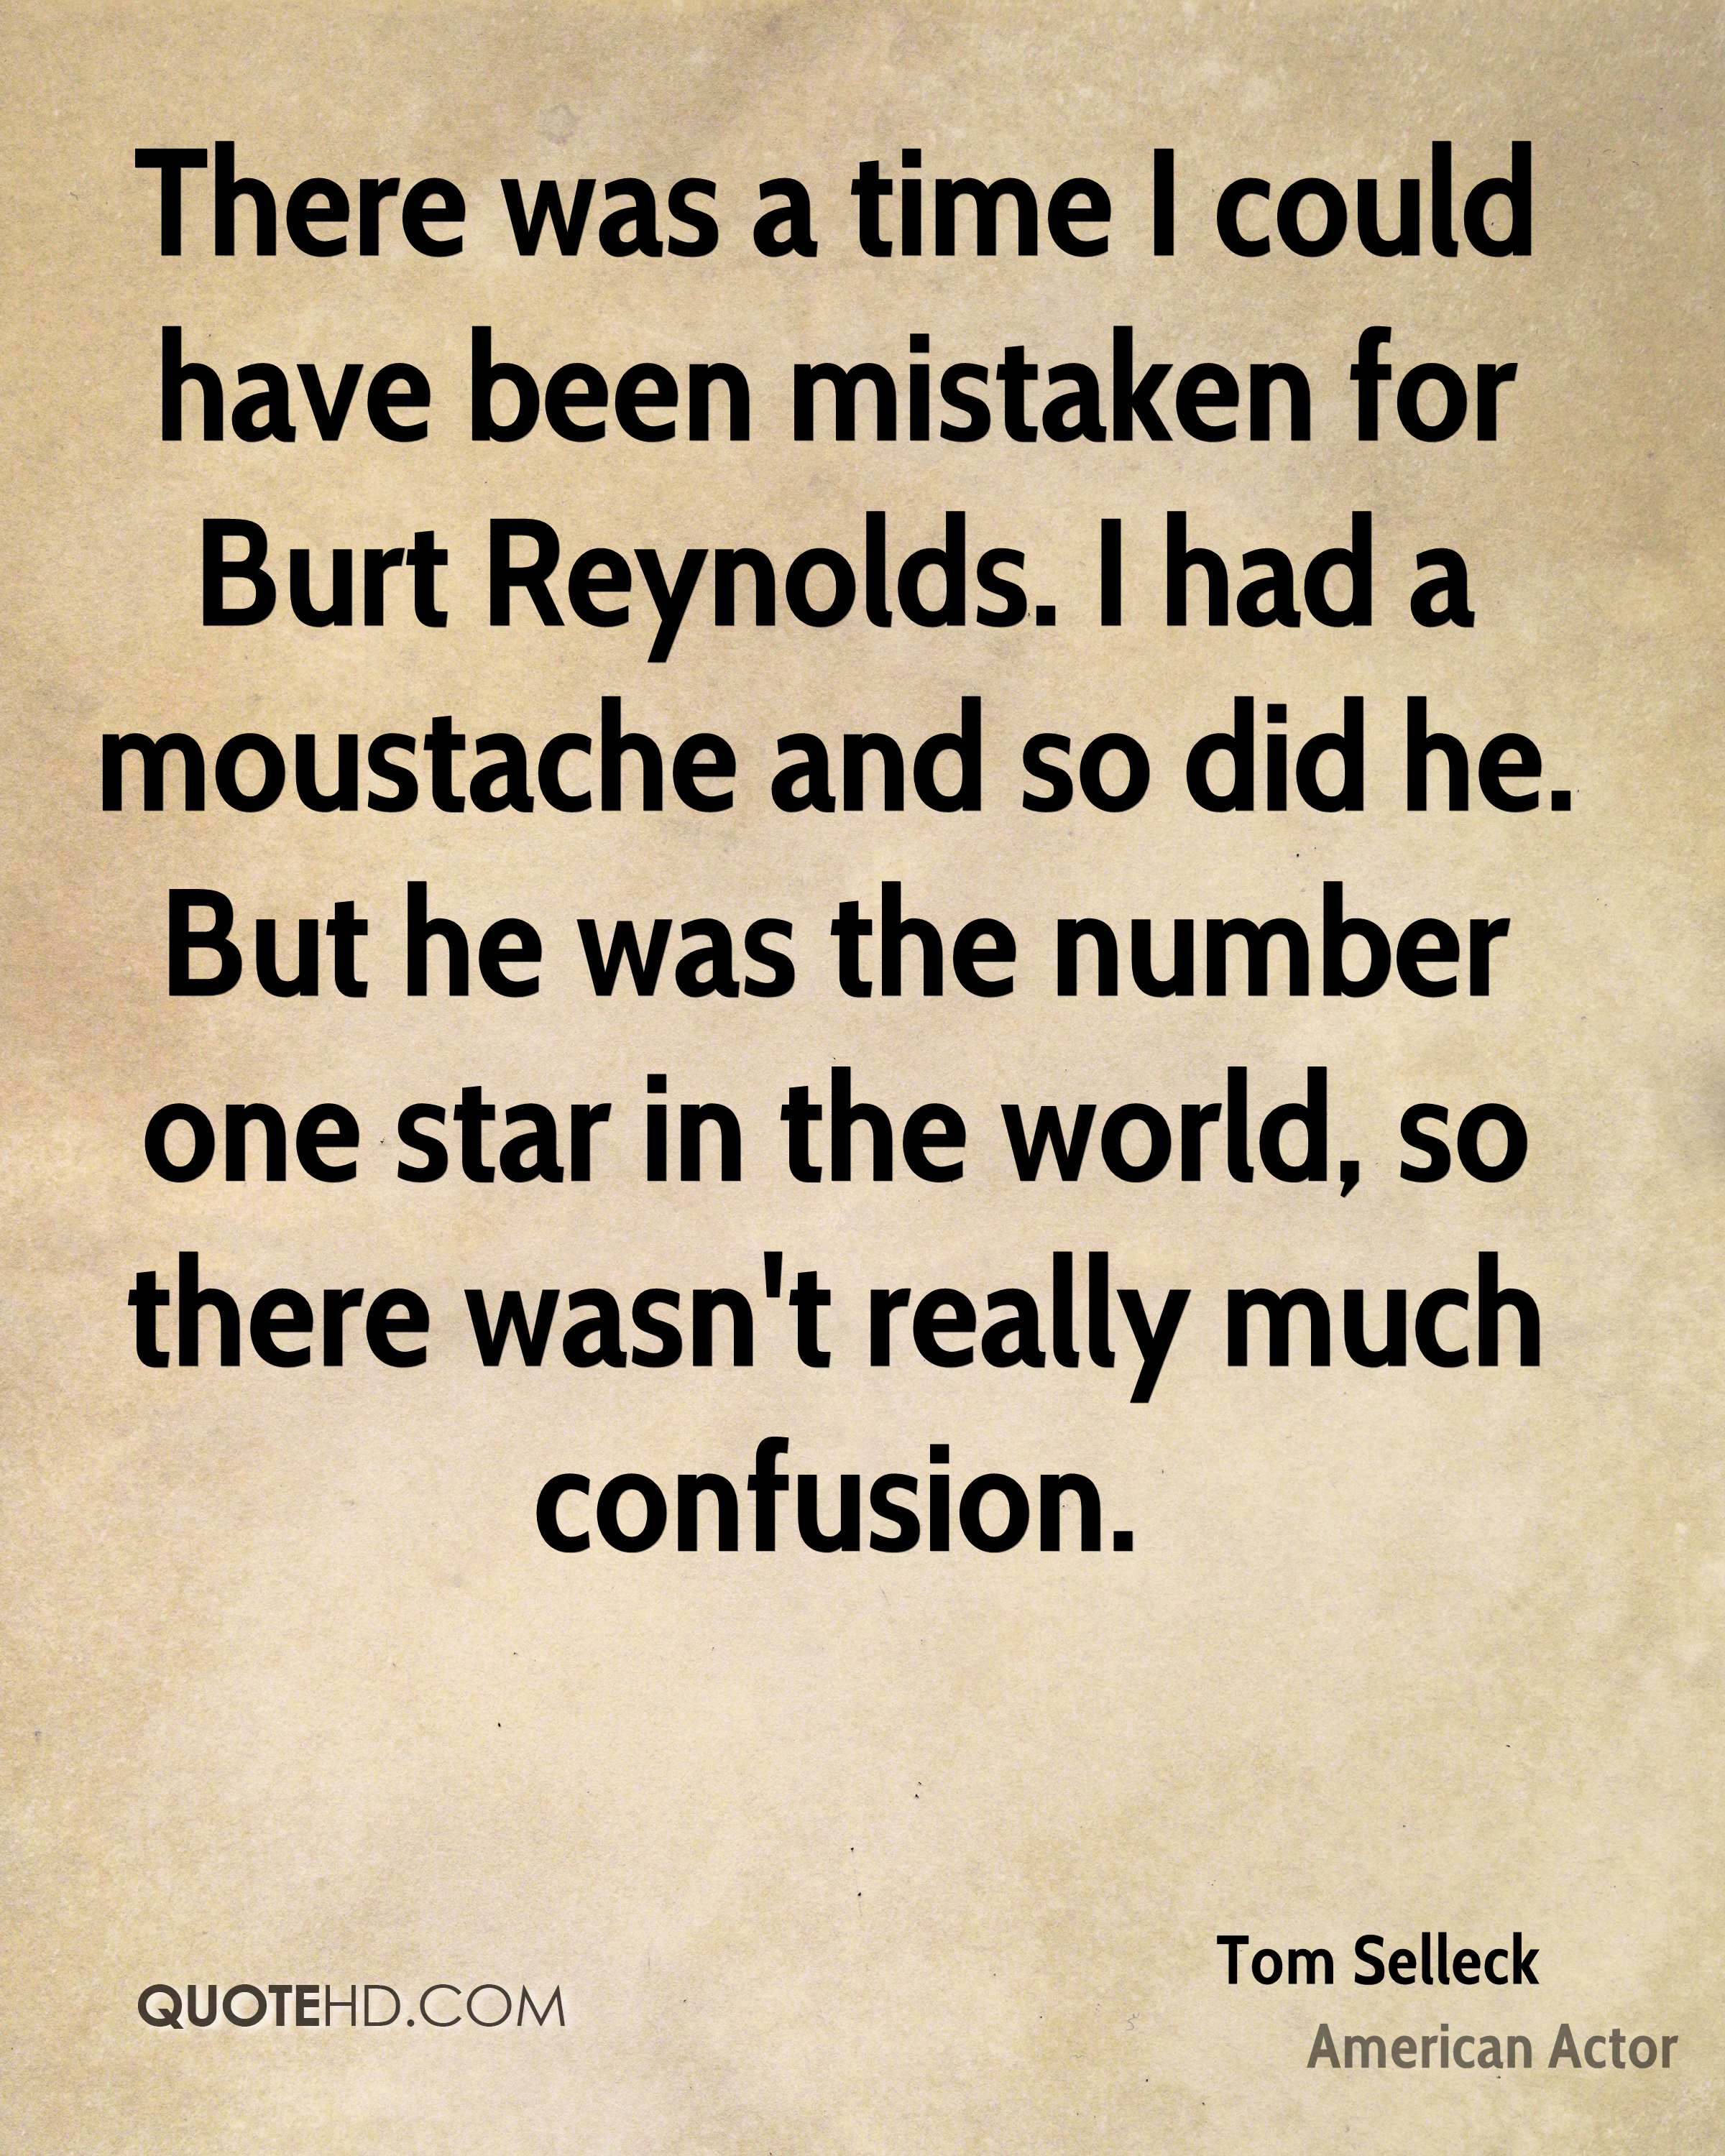 There was a time I could have been mistaken for Burt Reynolds. I had a moustache and so did he. But he was the number one star in the world, so there wasn't really much confusion.